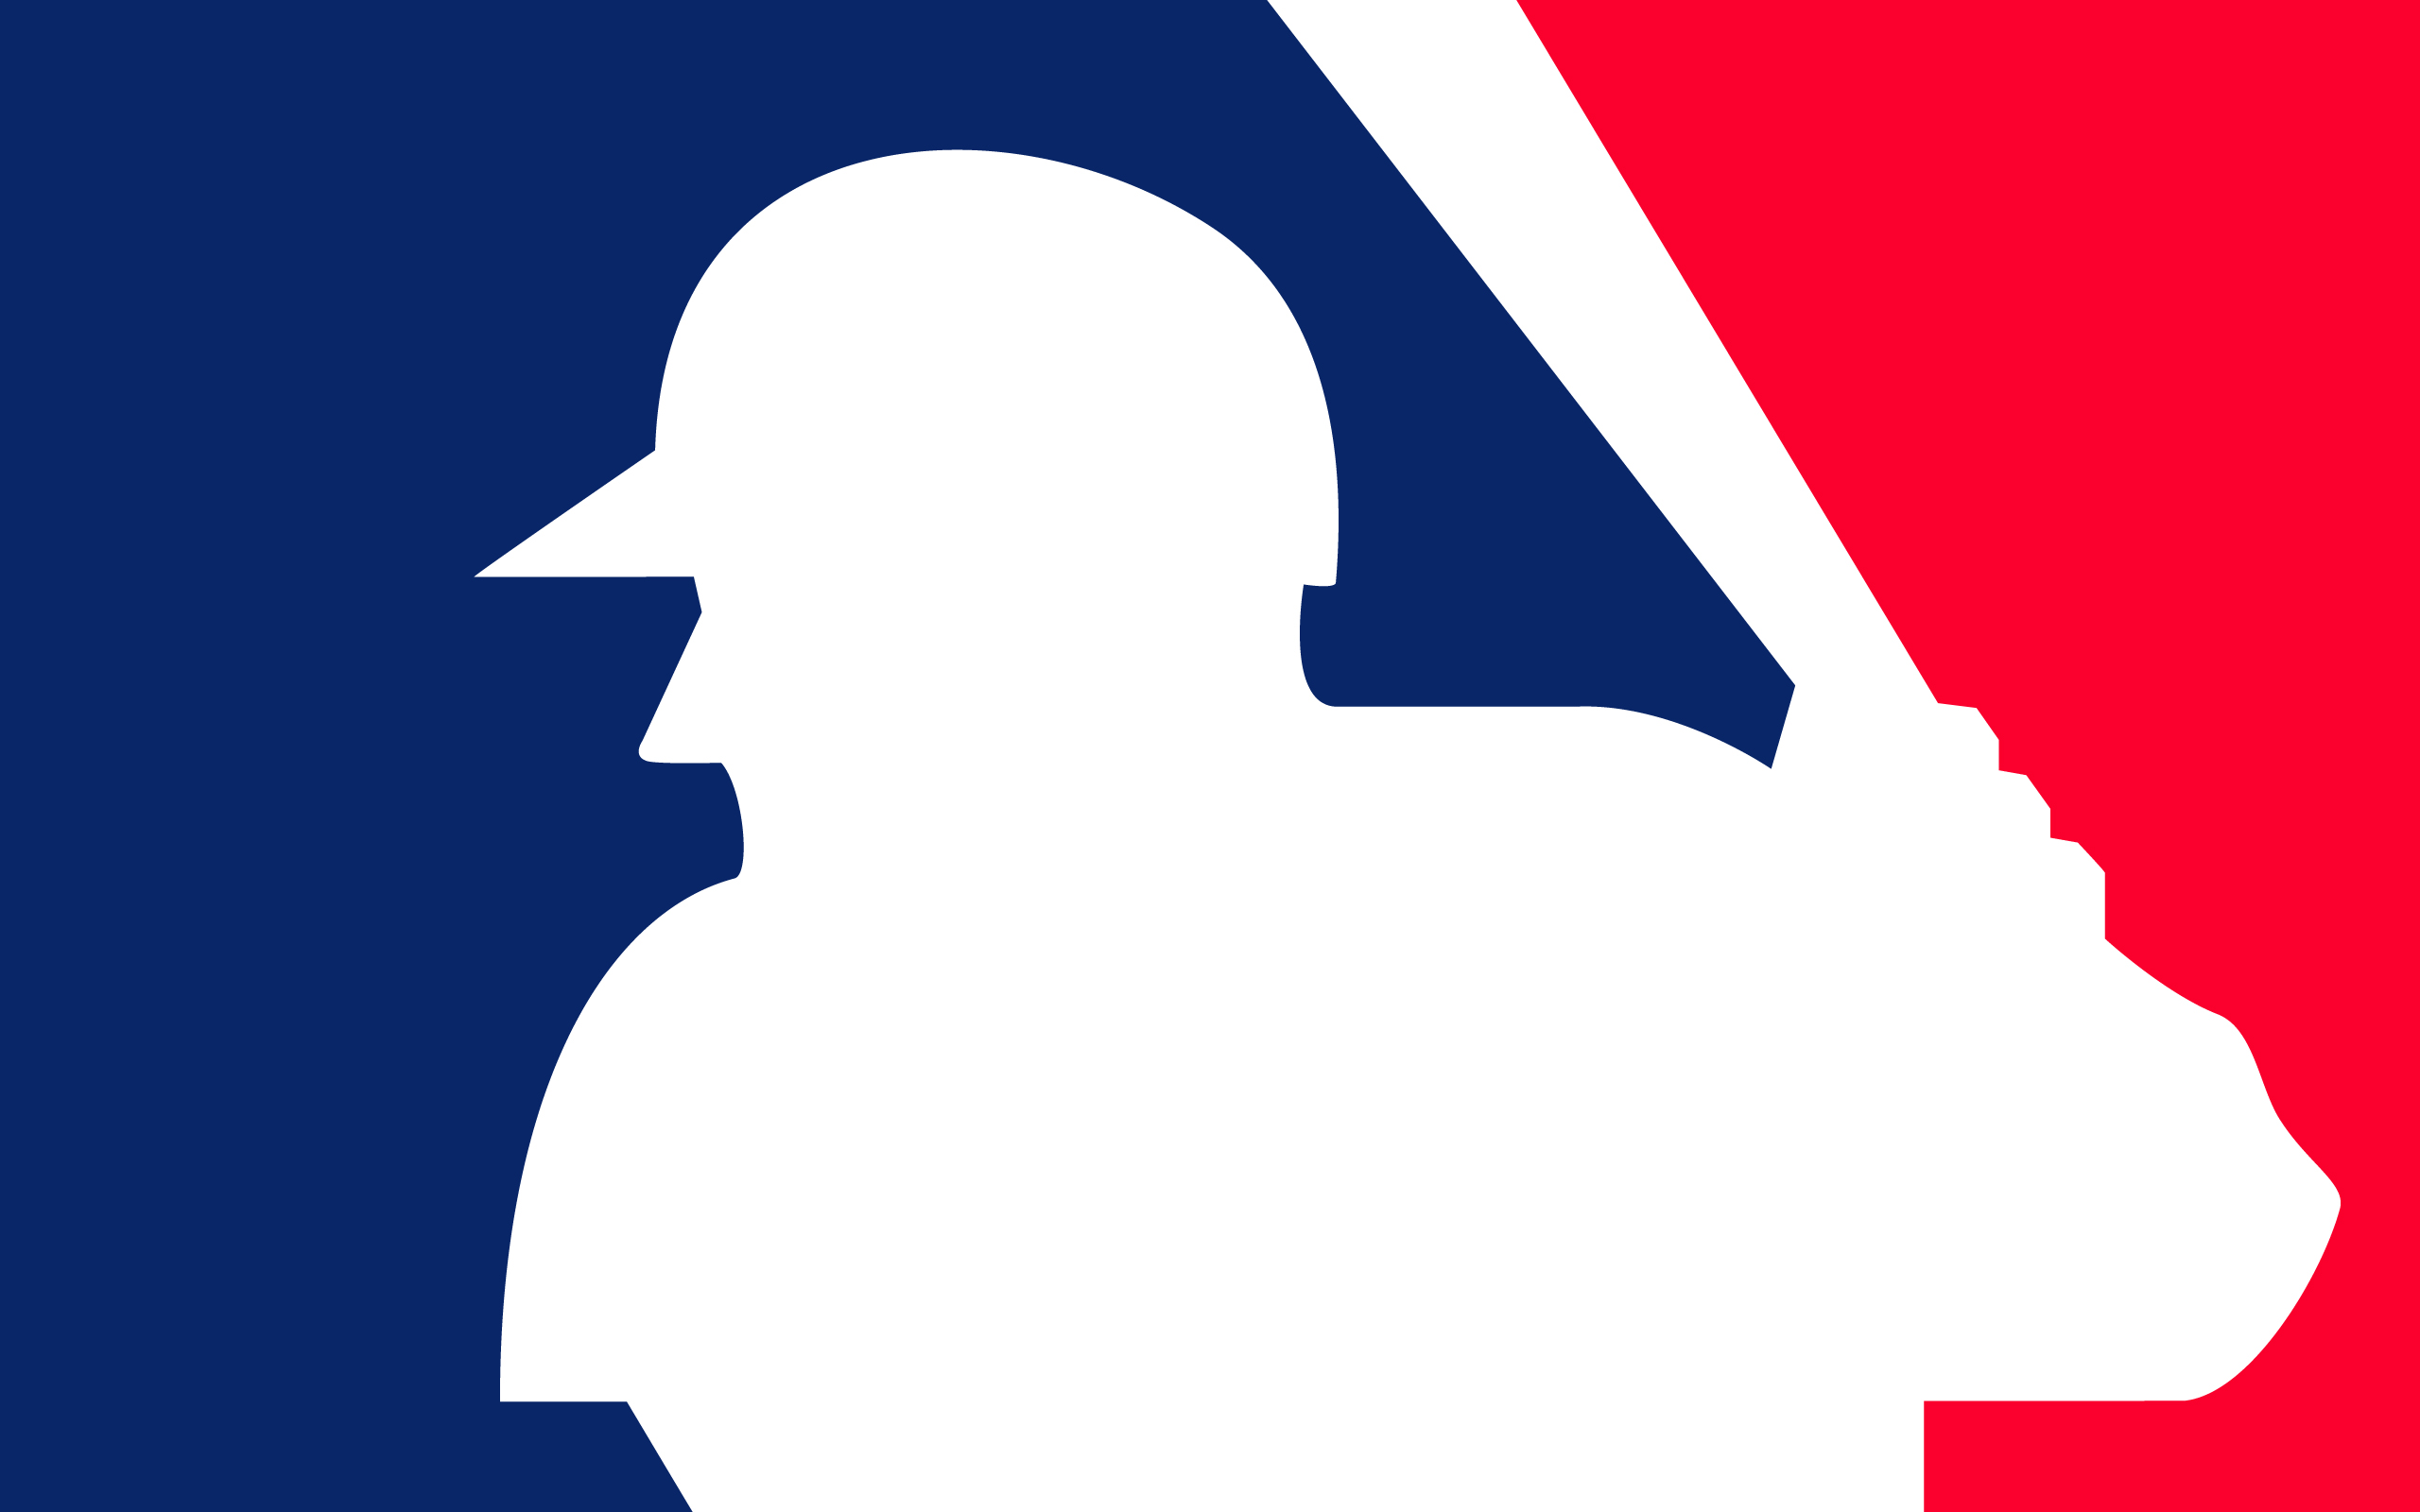 Major League Baseball Wallpaper 3